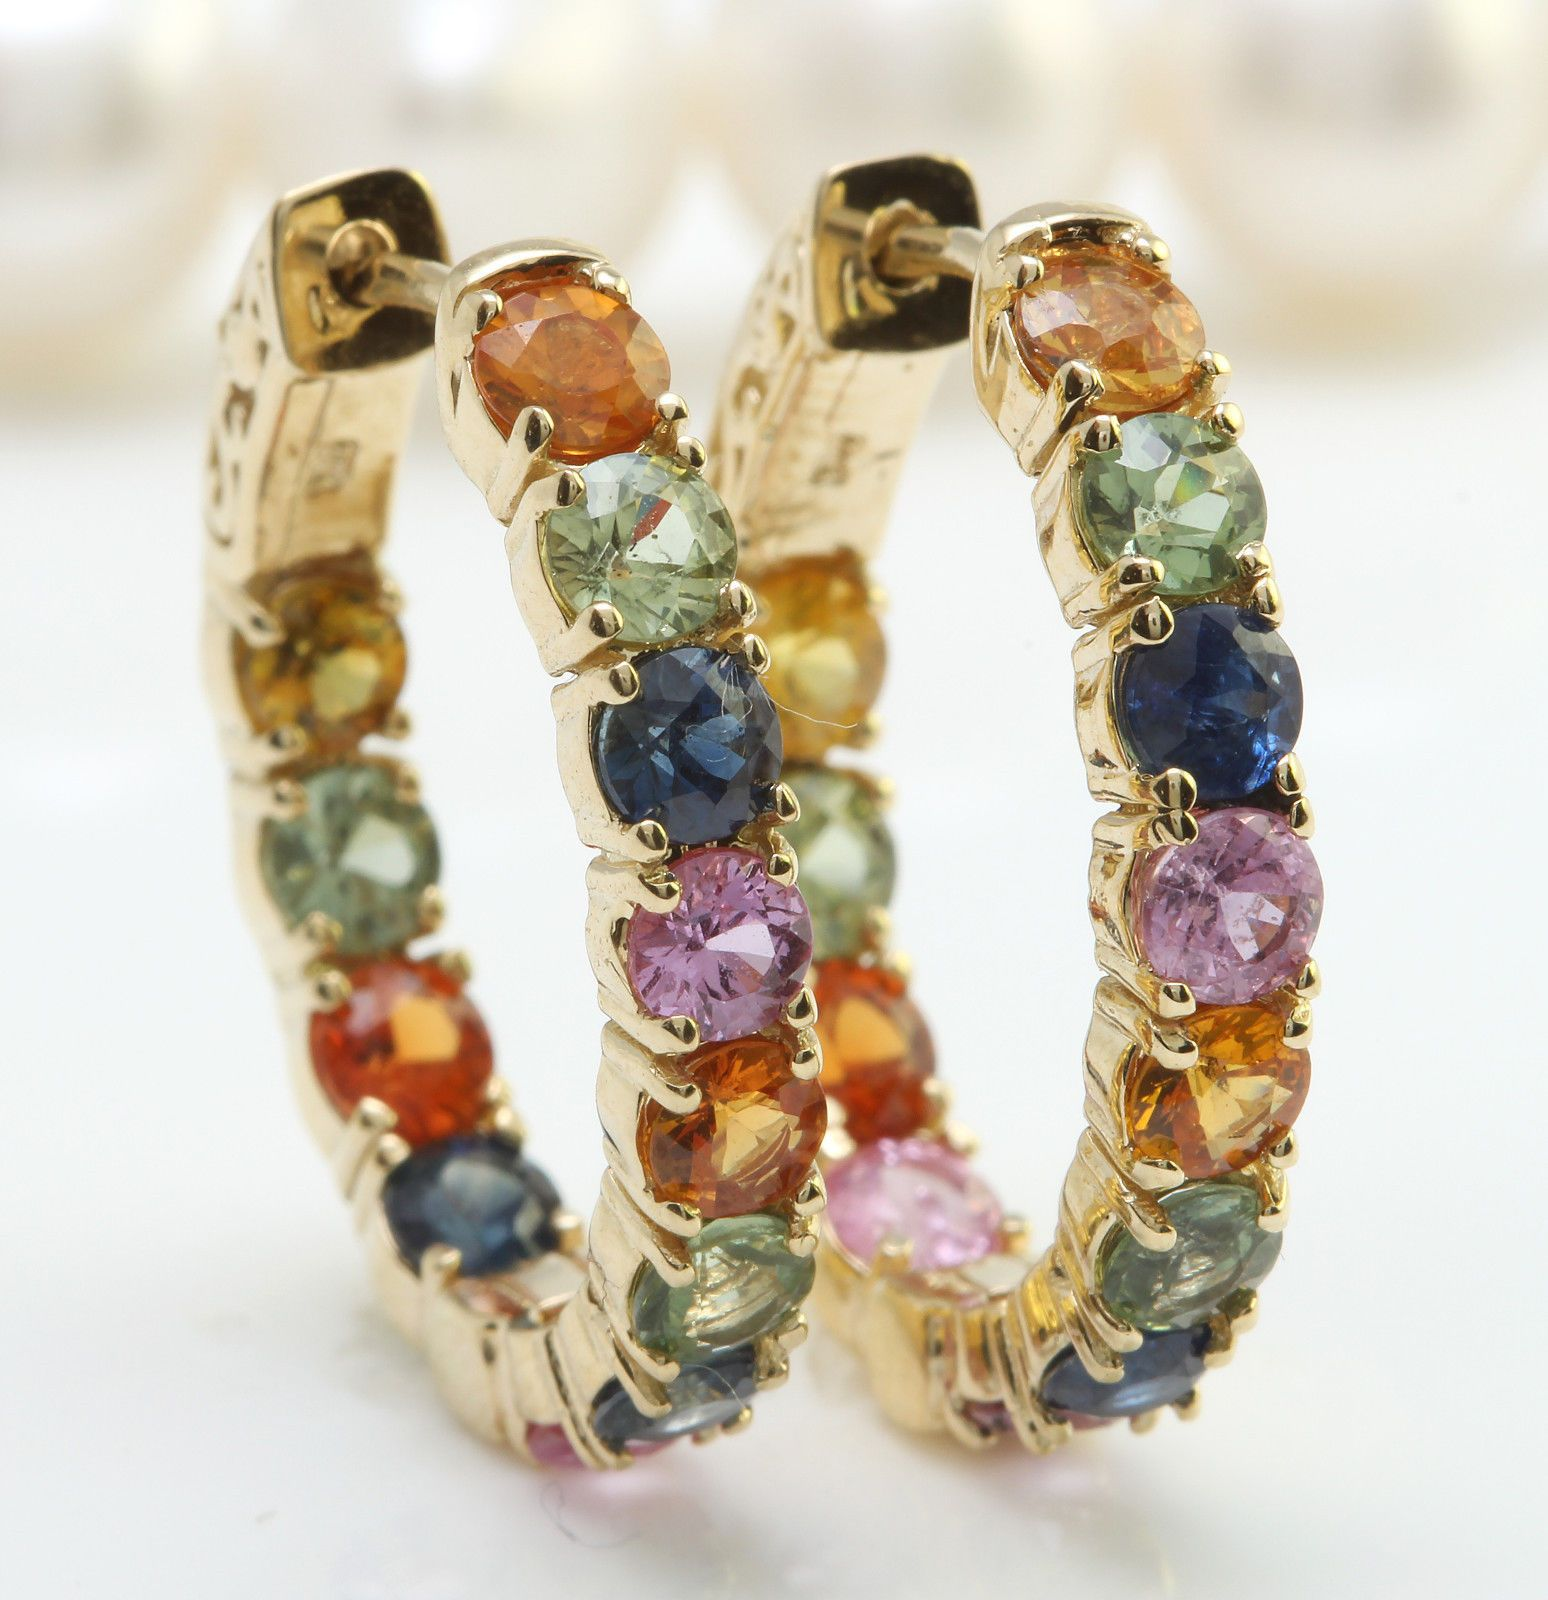 6.00CTW Natural Ceylon Multi-Color Sapphire in 14K Yellow Gold Women Earrings https://t.co/HTEHQjzts3 https://t.co/ijY3Qd74vH